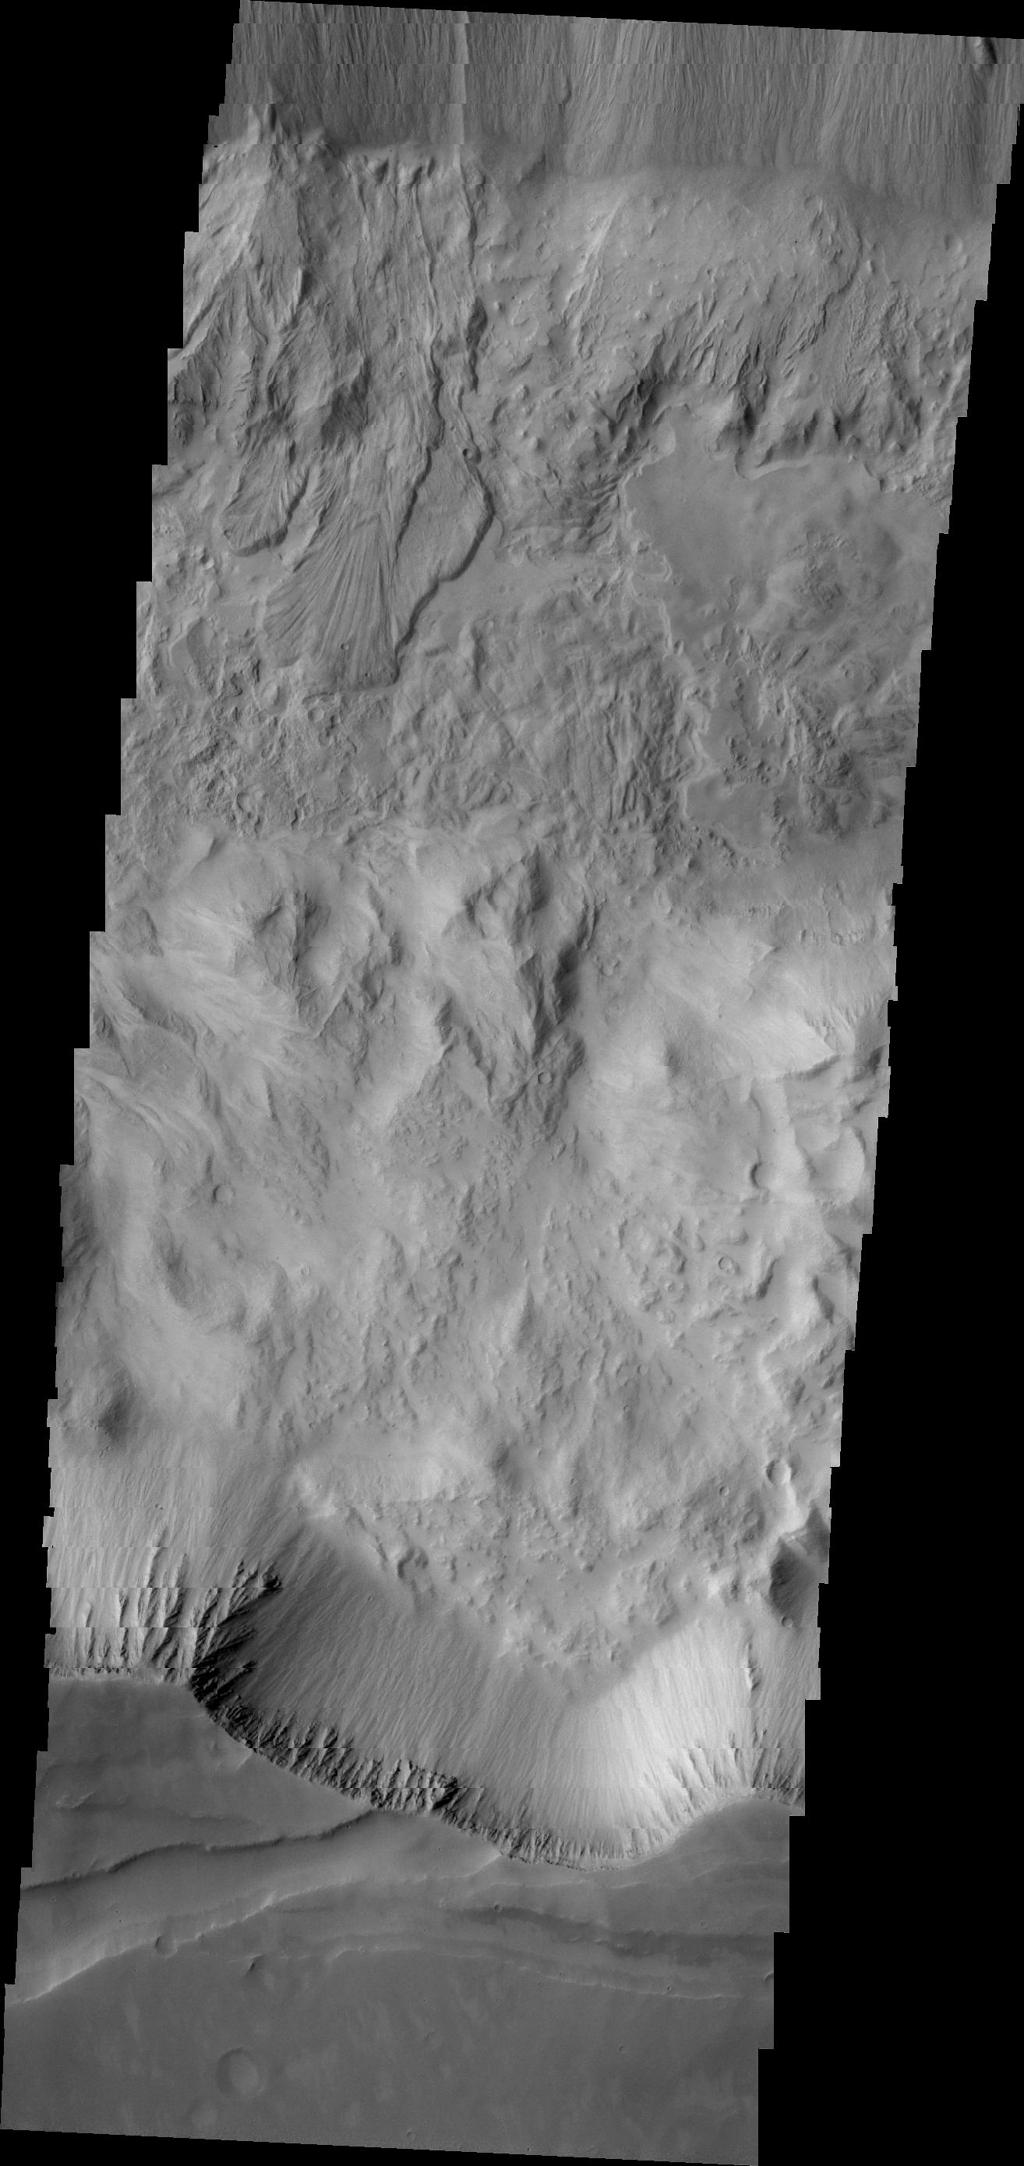 Two landslide deposits are visible in this image of Tithonium Chasma taken by NASA's 2001 Mars Odyssey spacecraft.